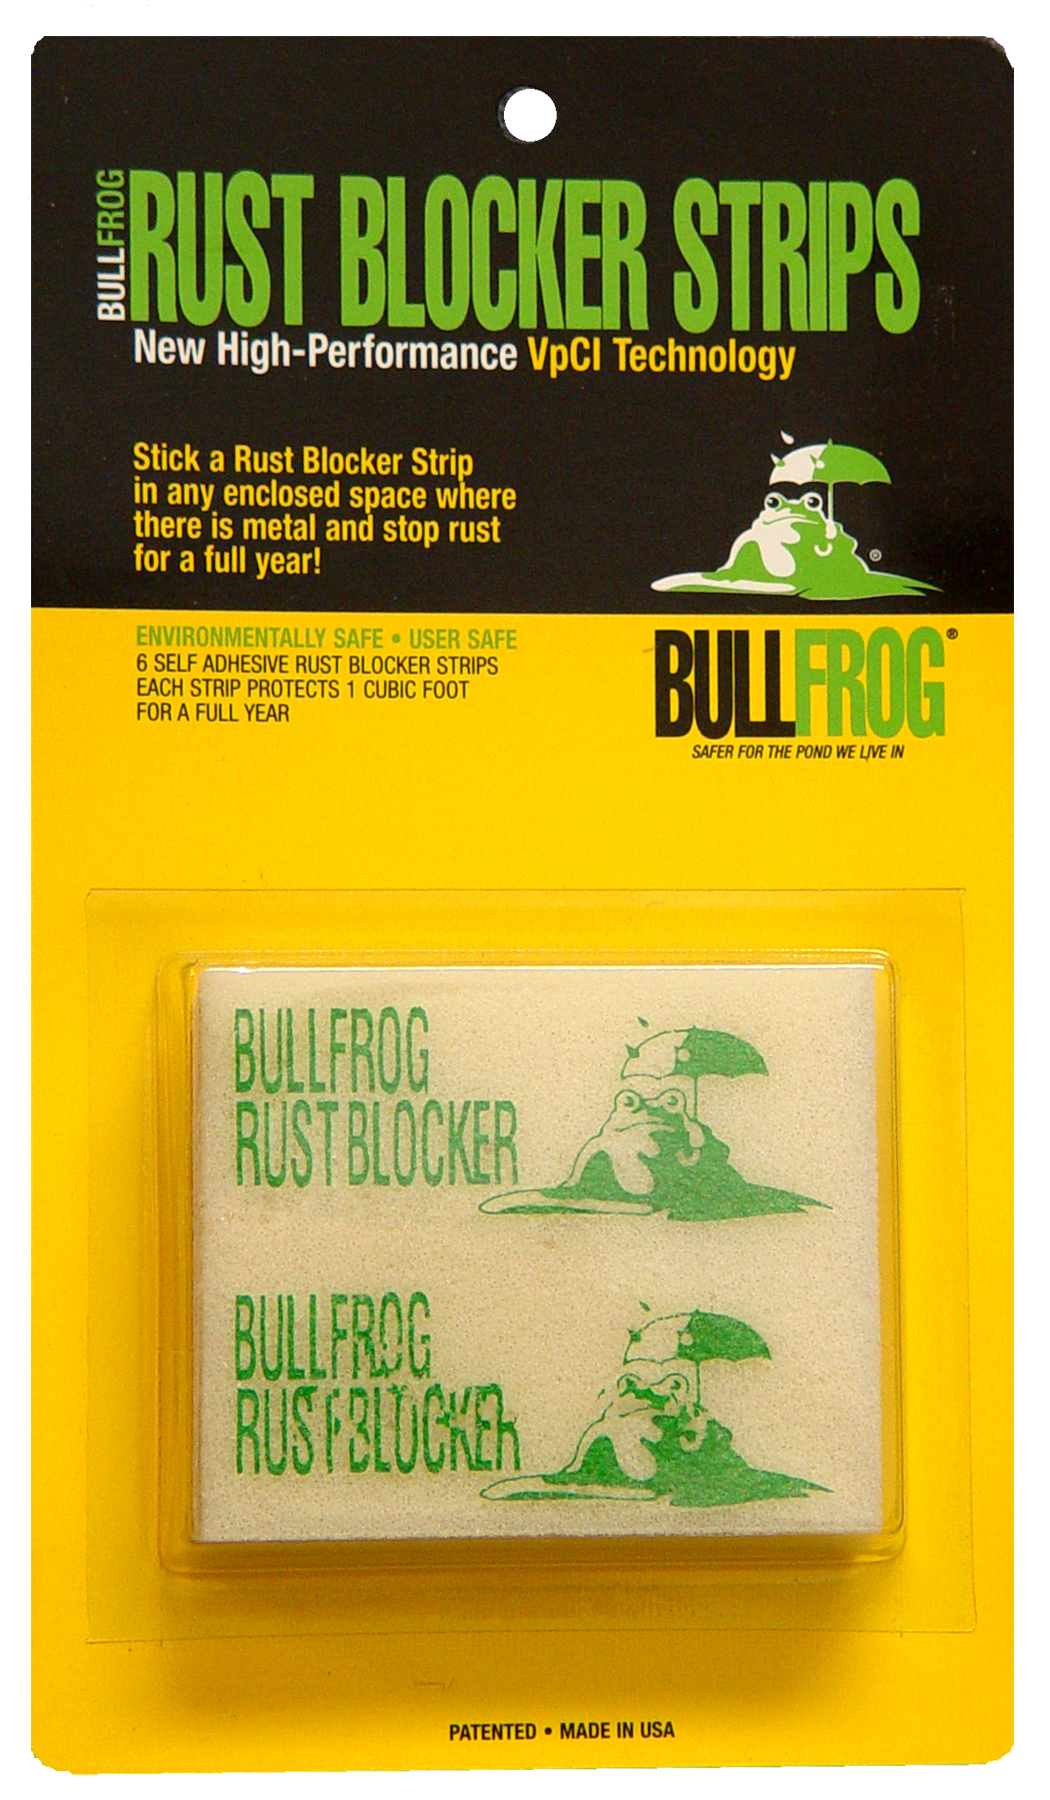 Bull Frog 91016 Rust Blocker Strips Rust Inhibitor Protects 1 cu ft 6Pk